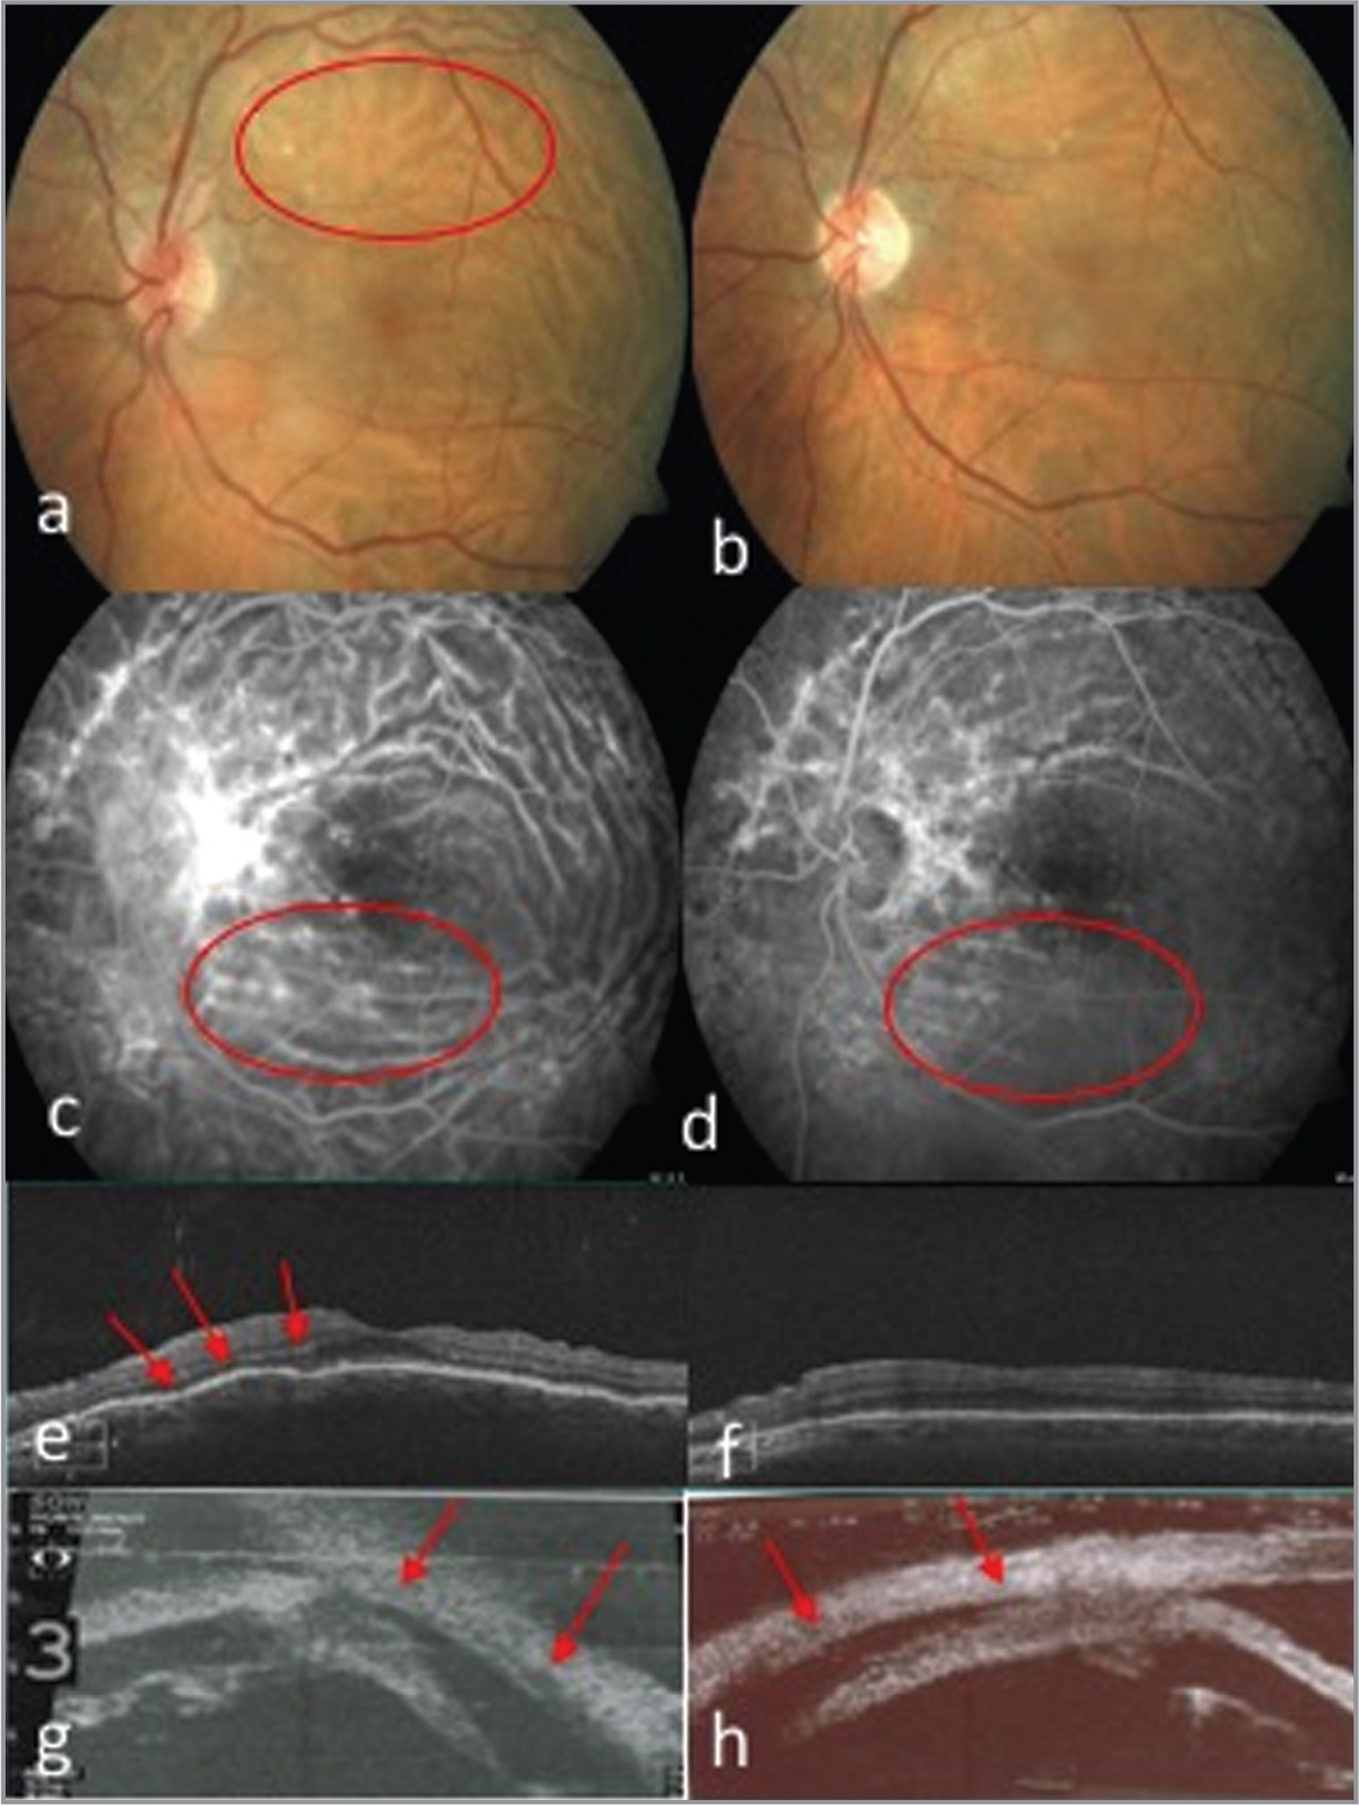 Patient No. 1. Images a, c, e, and g are preoperative; images b, d, f, and h are postoperative. Color retinography: (a) hypotonic maculopathy with evident macular folds, (b) without them. (c, d) Fluorescein angiography; both pictures with hyperfluorescent lines in (c) because of hypotonic maculopathy and in (b) still visible in a lesser degree due to the residual atrophy left by the macular fold. (e, f) Spectral-domain optical coherence tomography; (e) with subtle folds, (f) without them. (g, h) Ultrabiomicroscopy: a representative images of ciliochoroidal detachment.